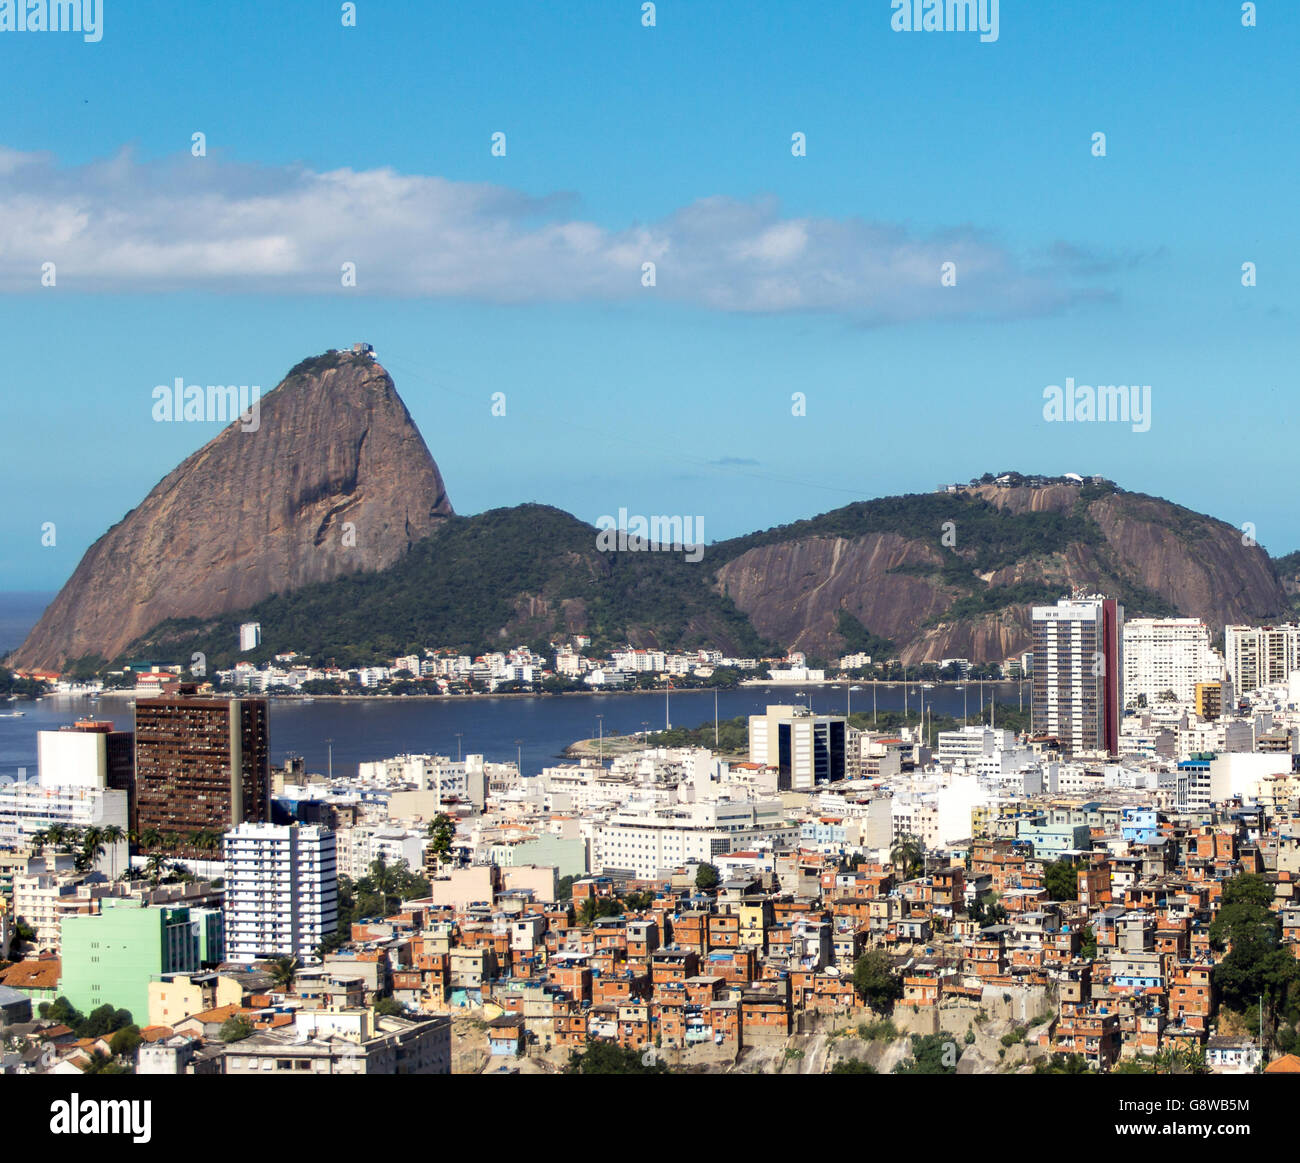 Landmark of Rio de Janeiro: Sugar Loaf. Also social inequality with poor communities and rich neighborhood - Stock Image